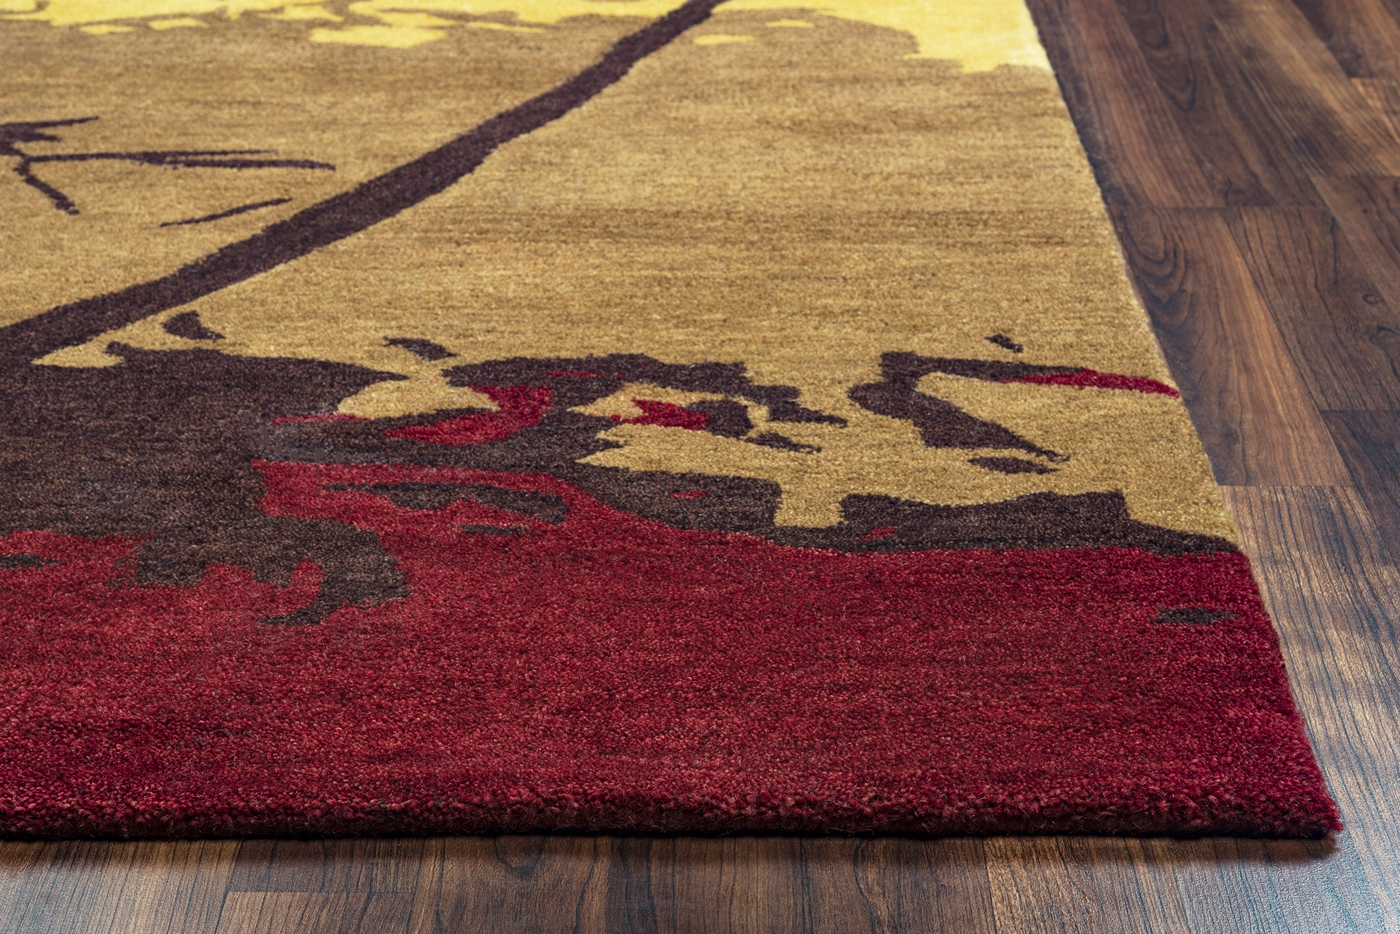 highland autumn season wool area rug in red black tan. Black Bedroom Furniture Sets. Home Design Ideas